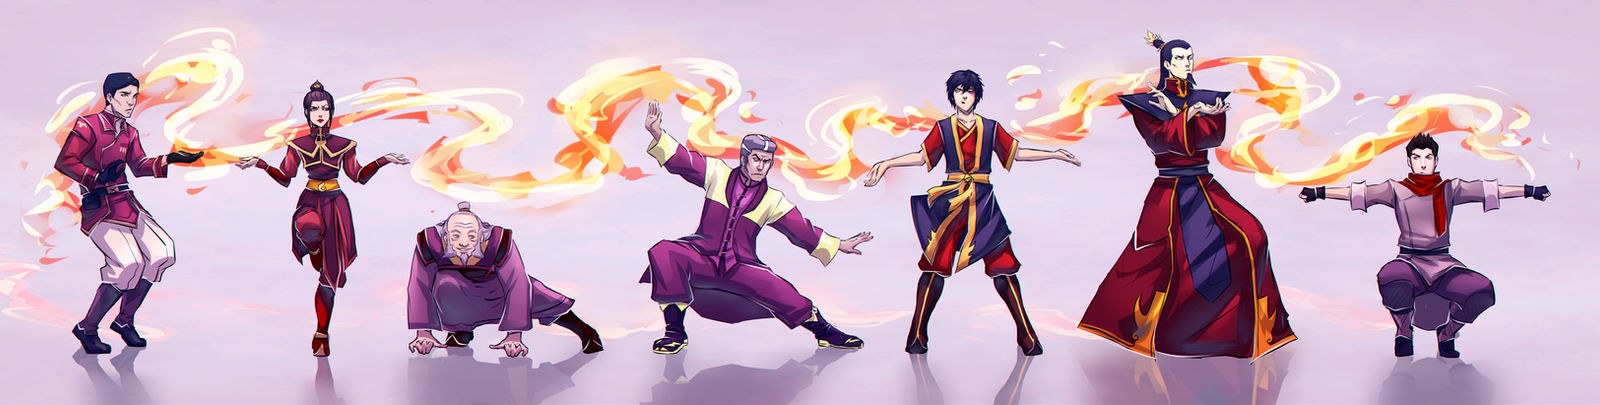 Firebenders: Dancing Dragon